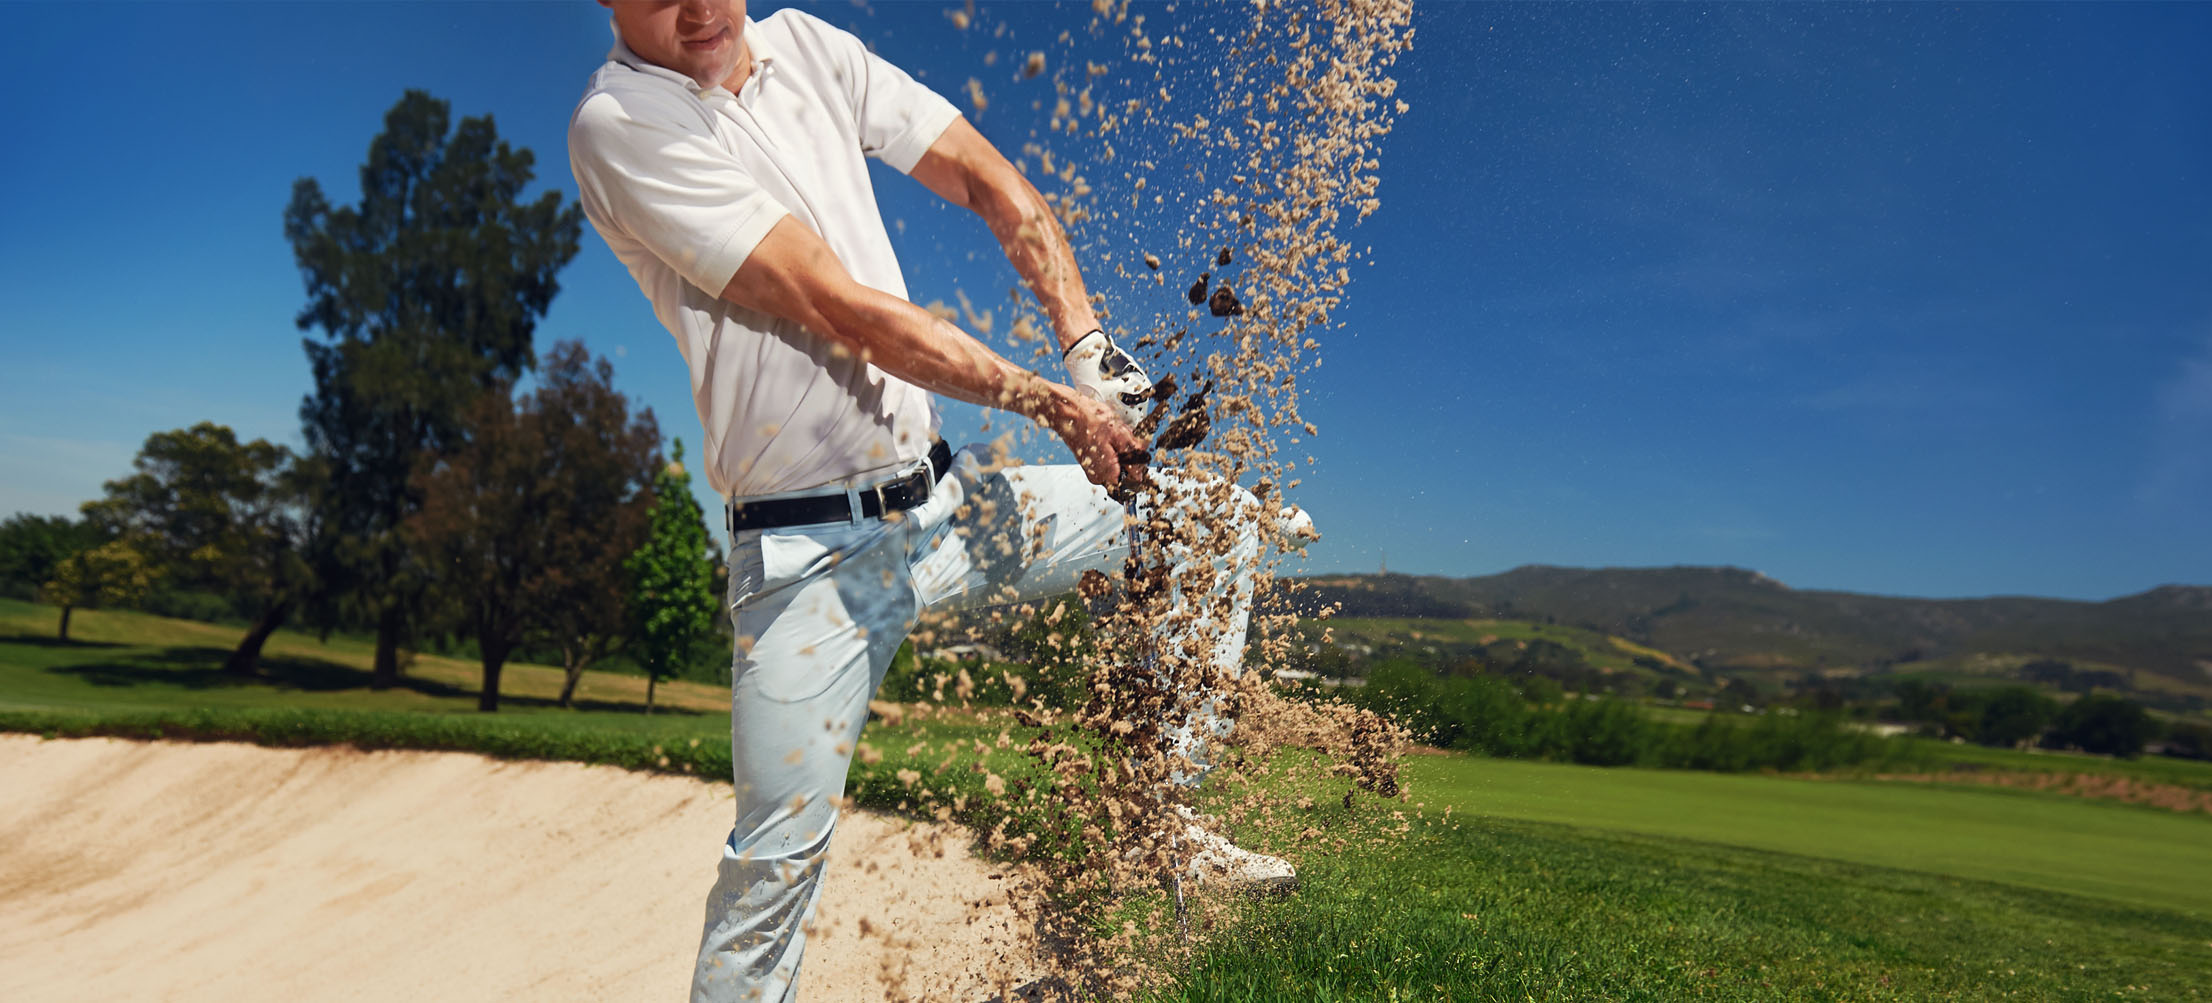 man hitting golf ball out of the sand